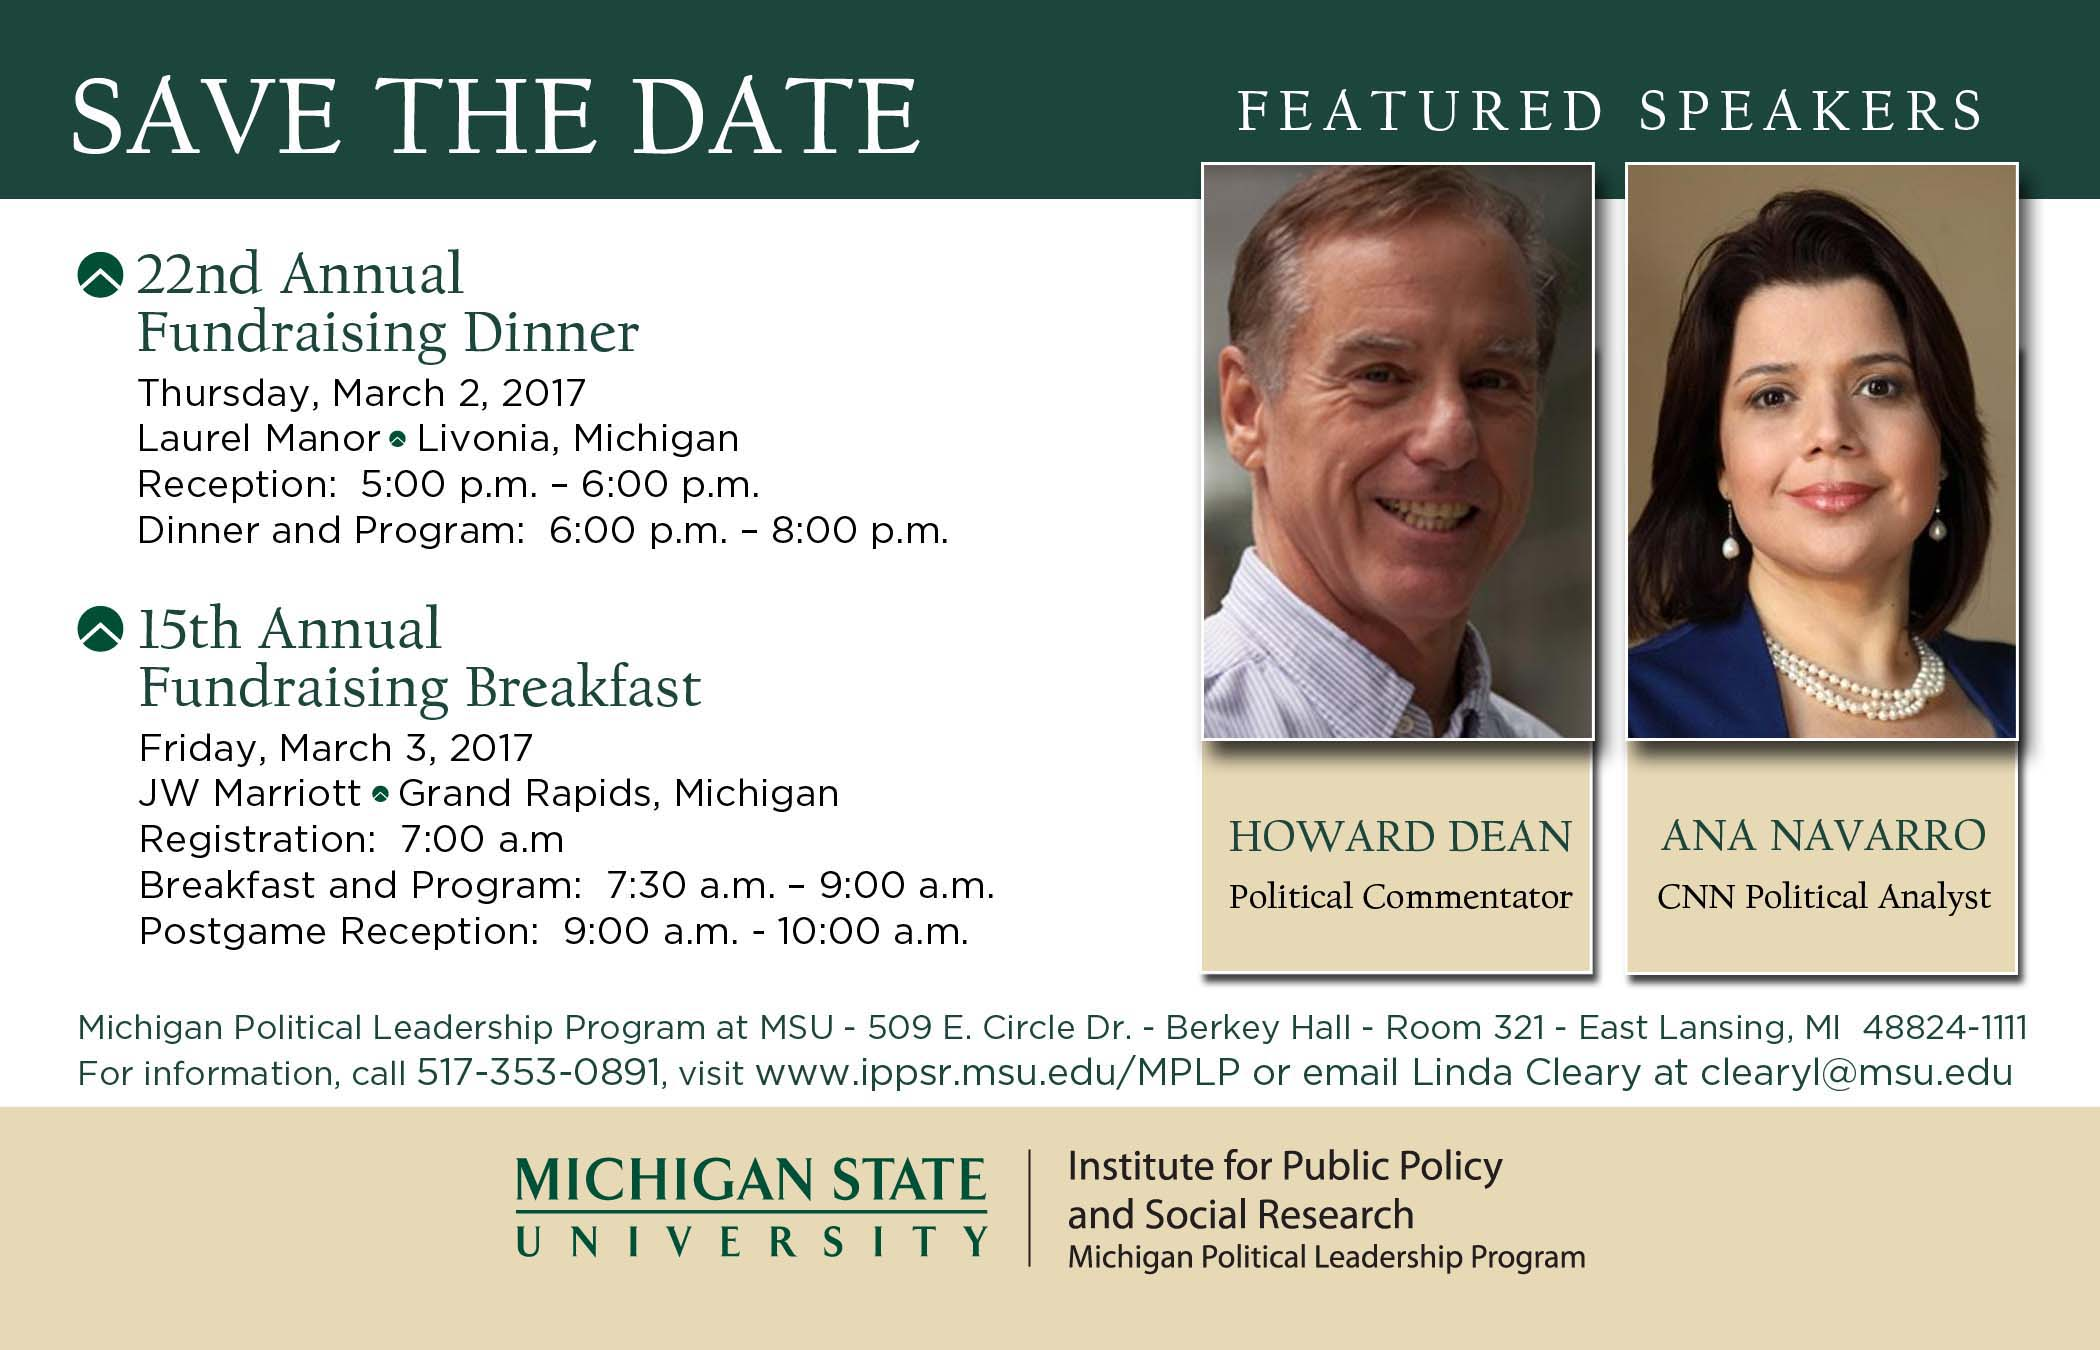 Save the Date card for Howard Dean and Ana Navarro